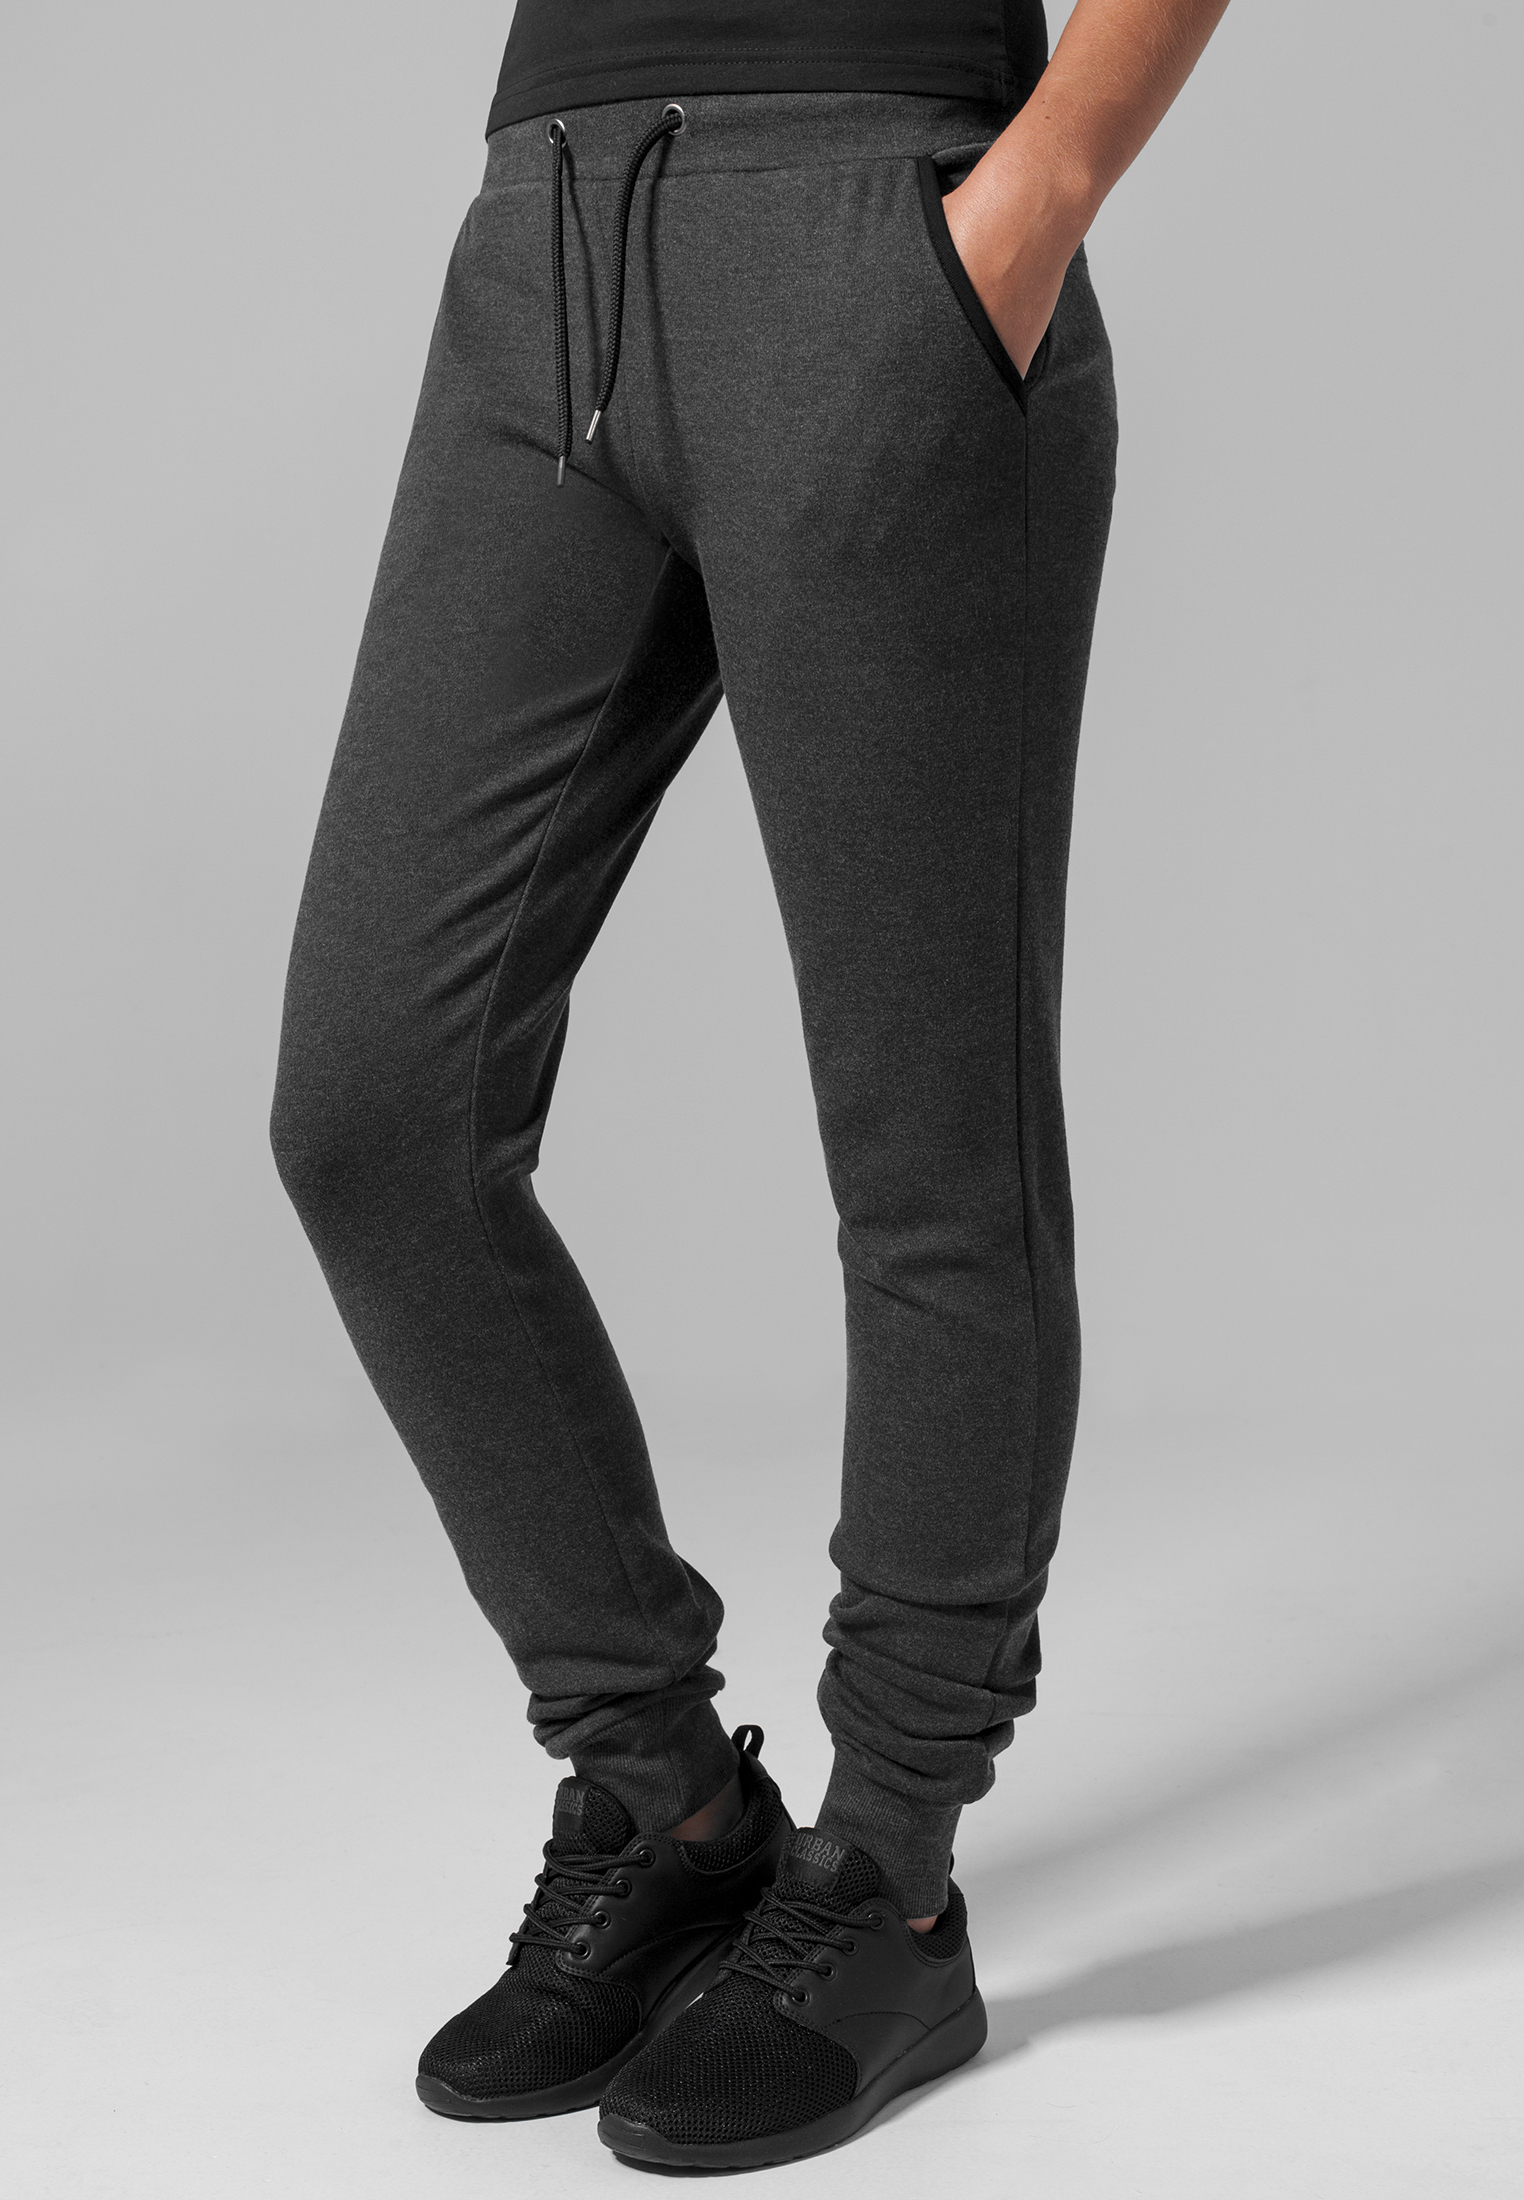 Tepláky Urban Classics Ladies Fitted Athletic Pants Charcoal L